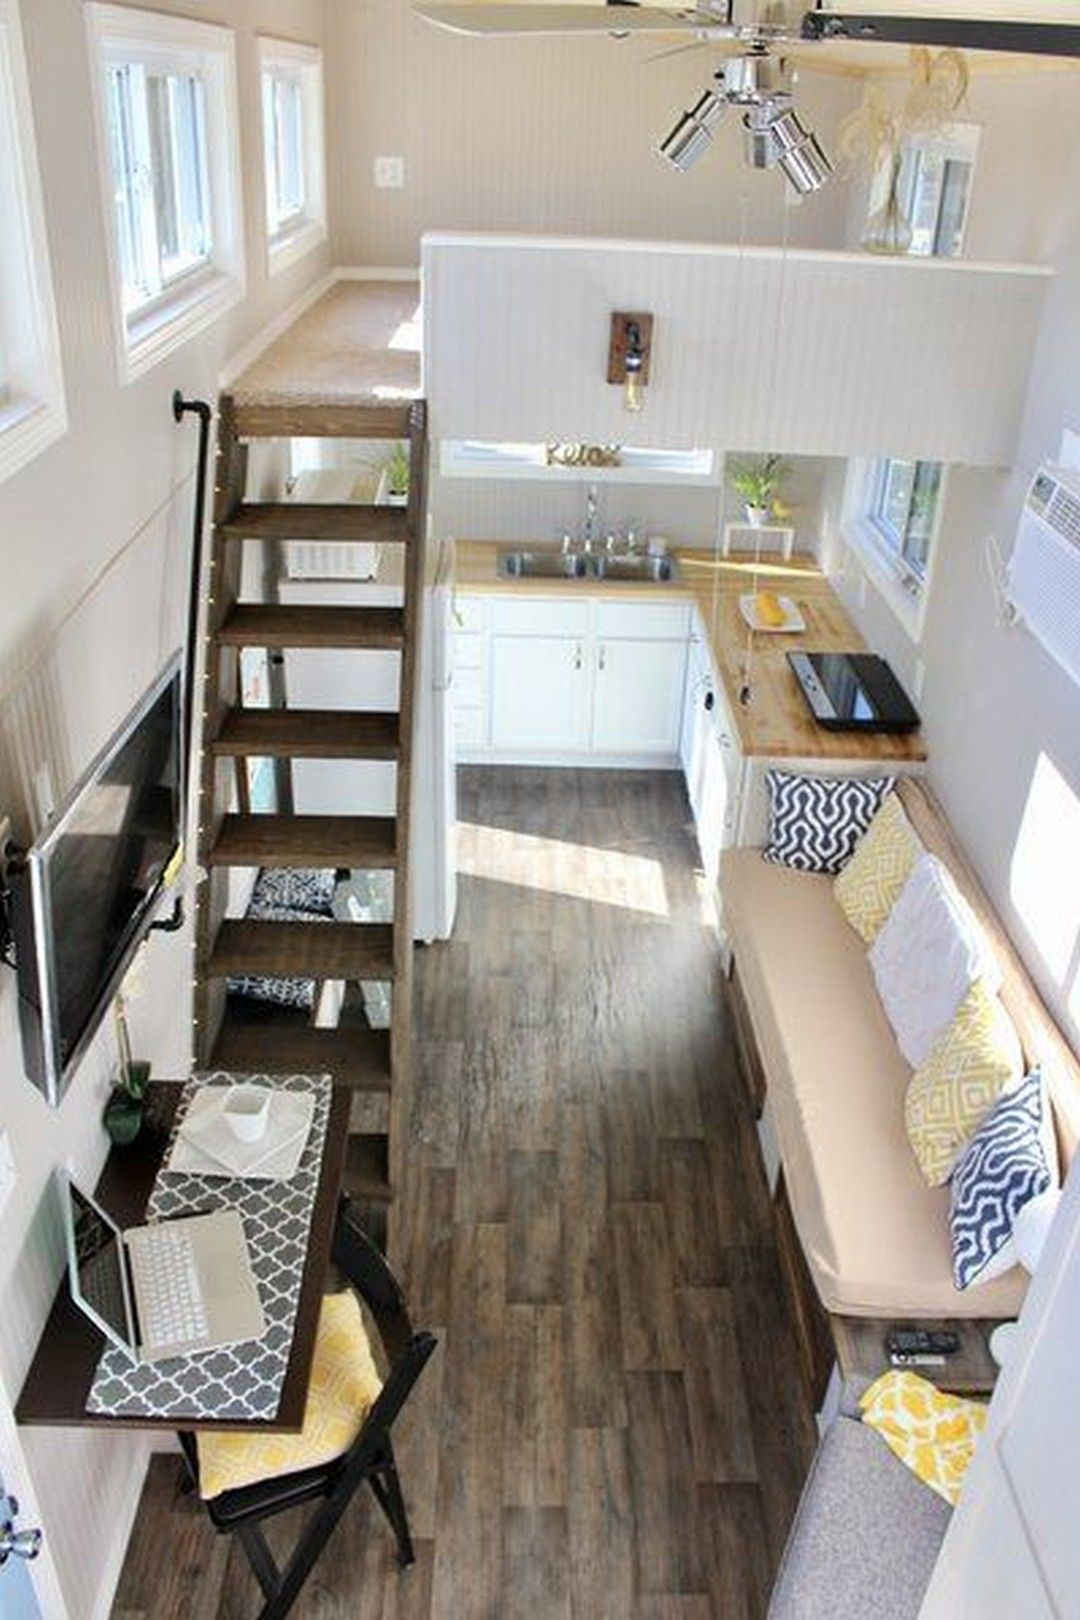 70 Endearing Tiny House Organization Tips That Ll Inspire You Page 22 Of 70 Tiny House Organization Tiny House Interior Modern Tiny House